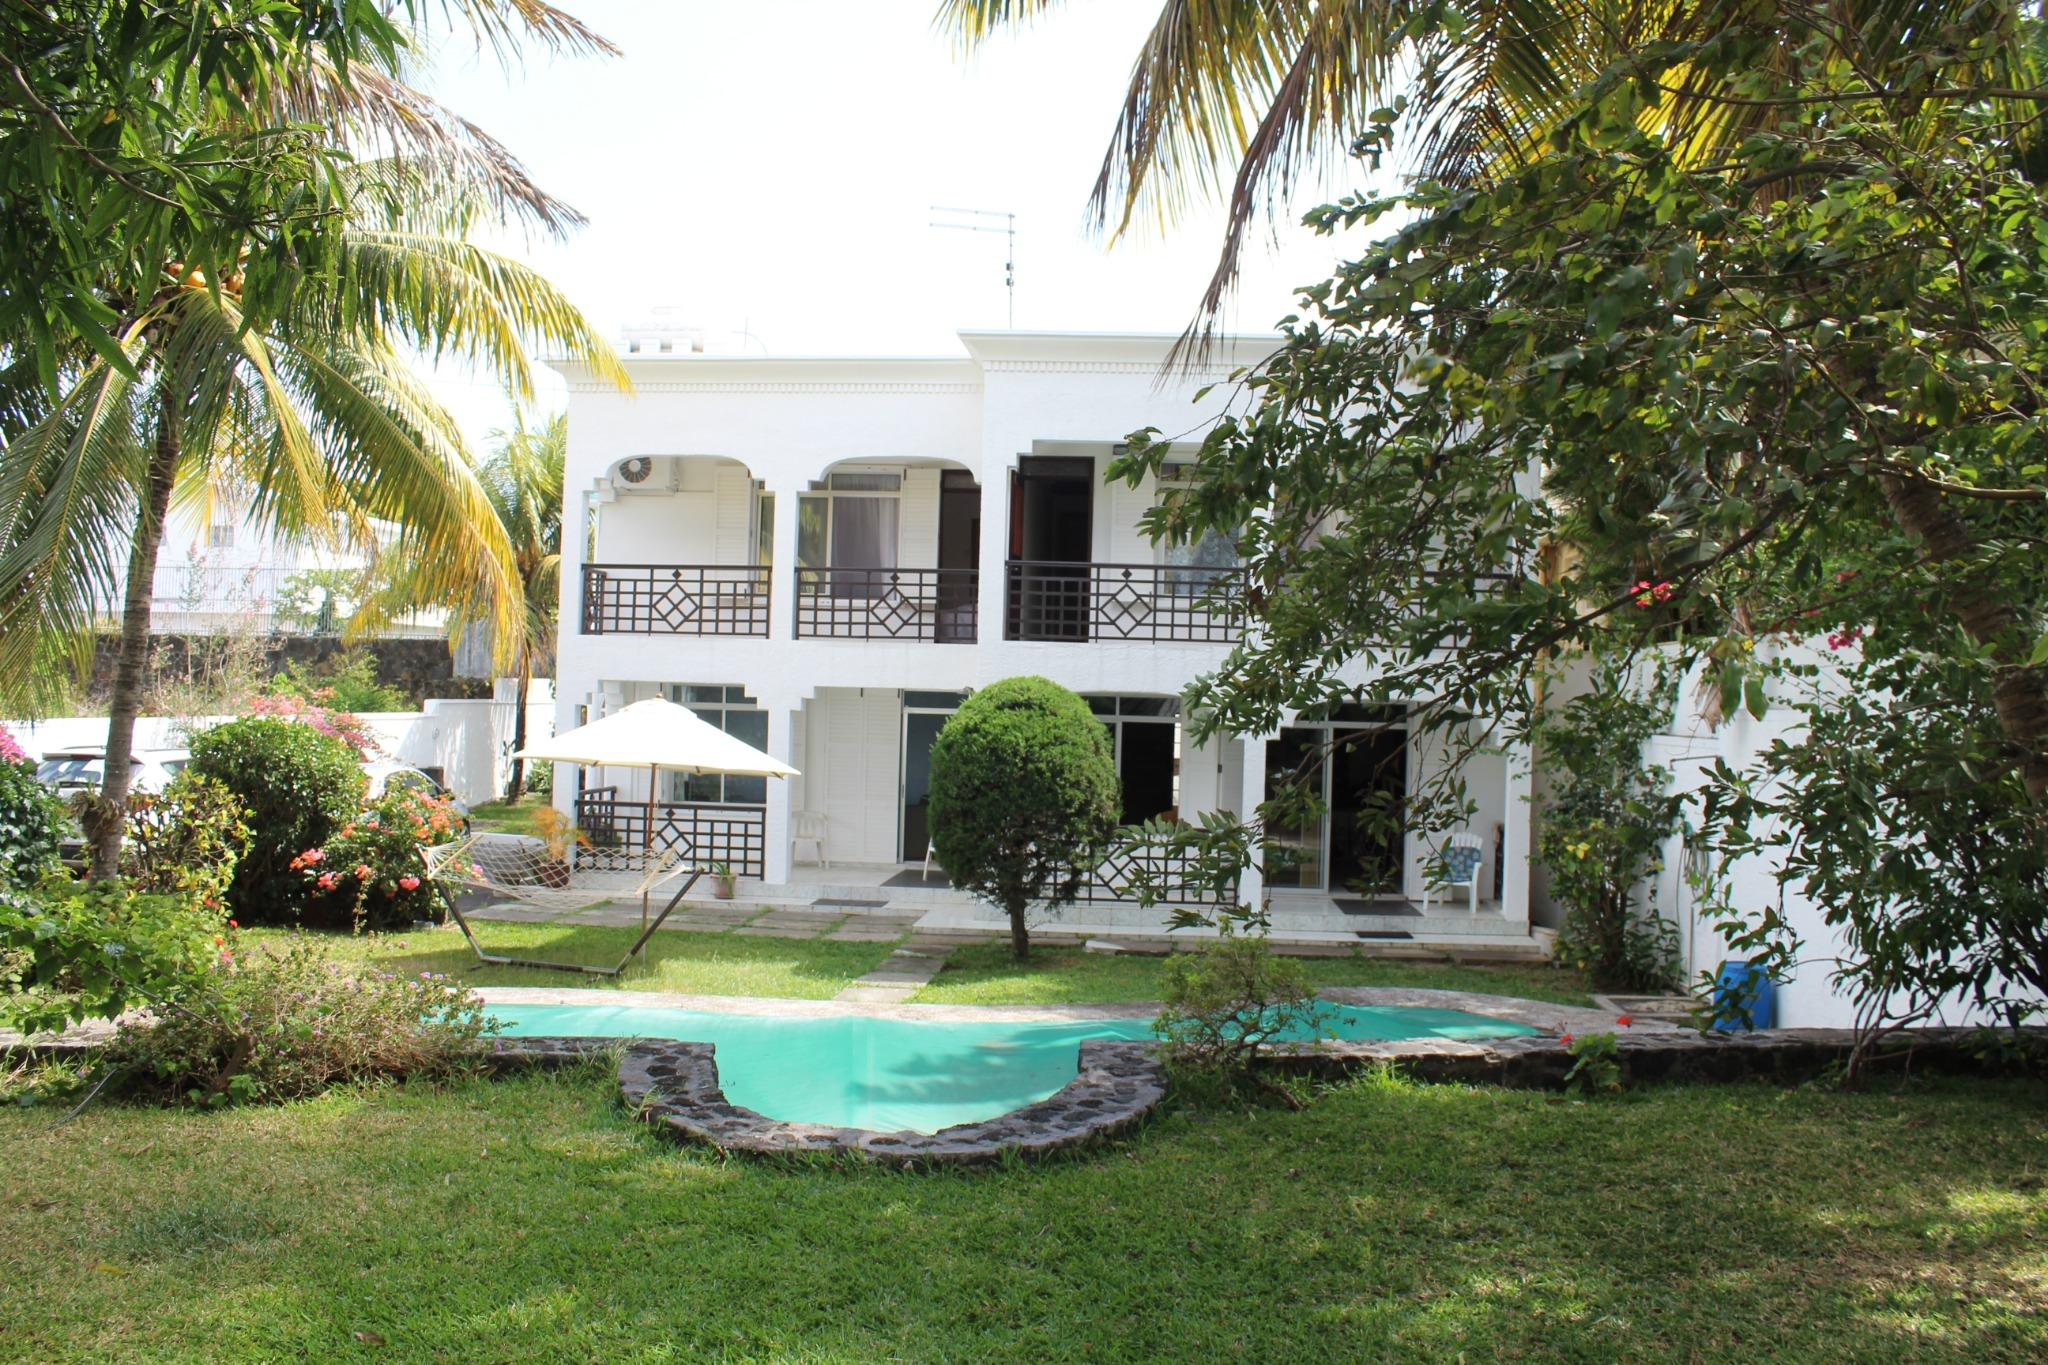 For sale – House to renovate of 325 m2 near the beach of Pereybere.